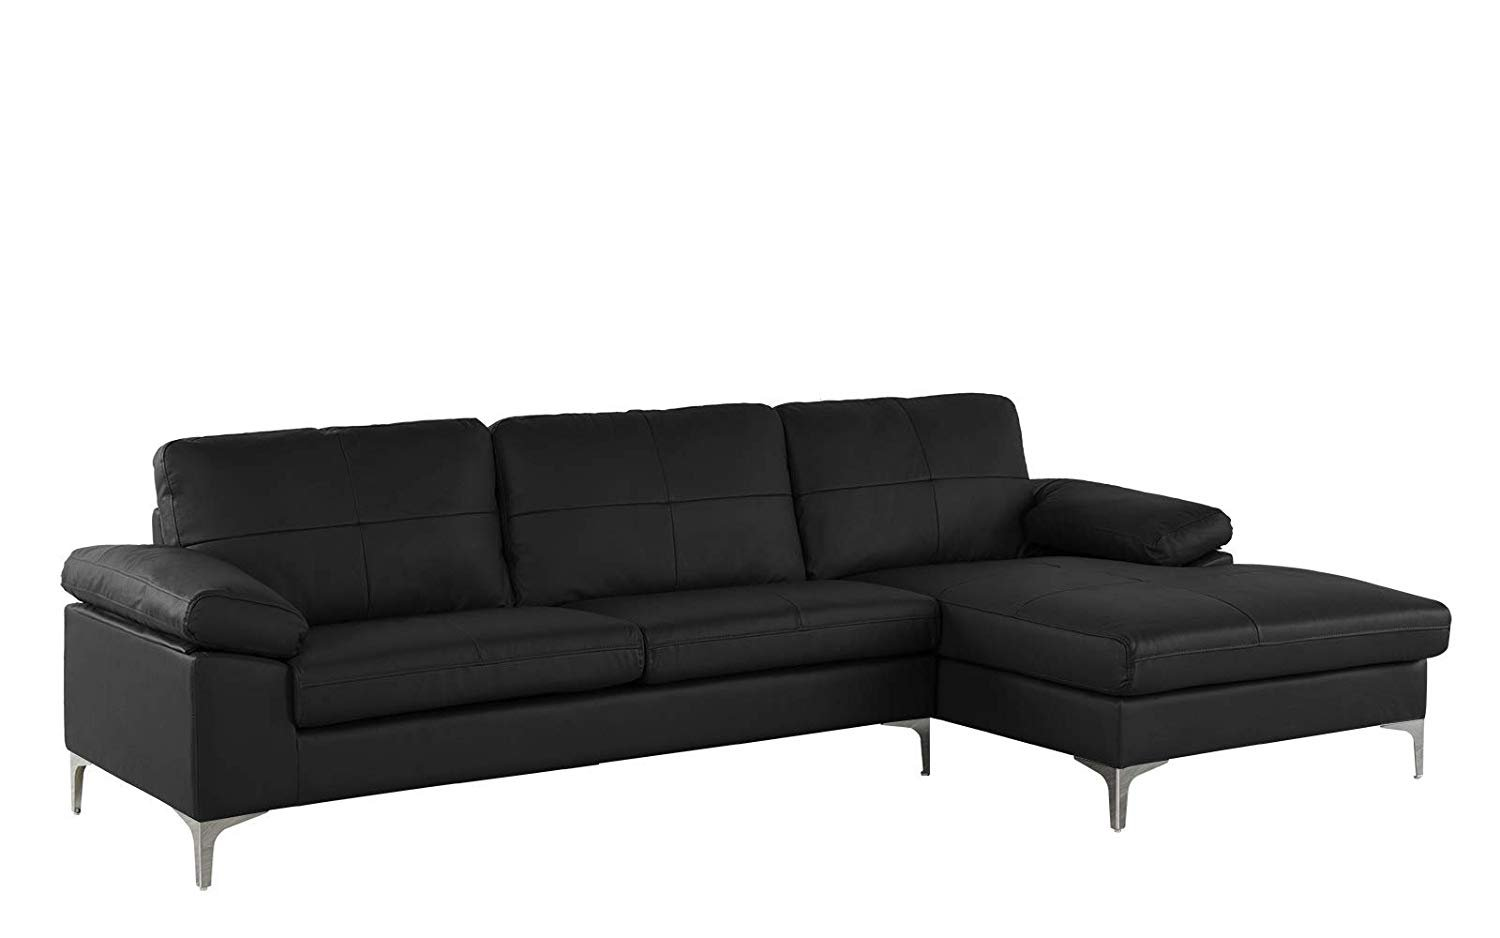 Details About Black Large Leather Sectional Sofa L Shape Couch With Chaise 108 7 W Inches